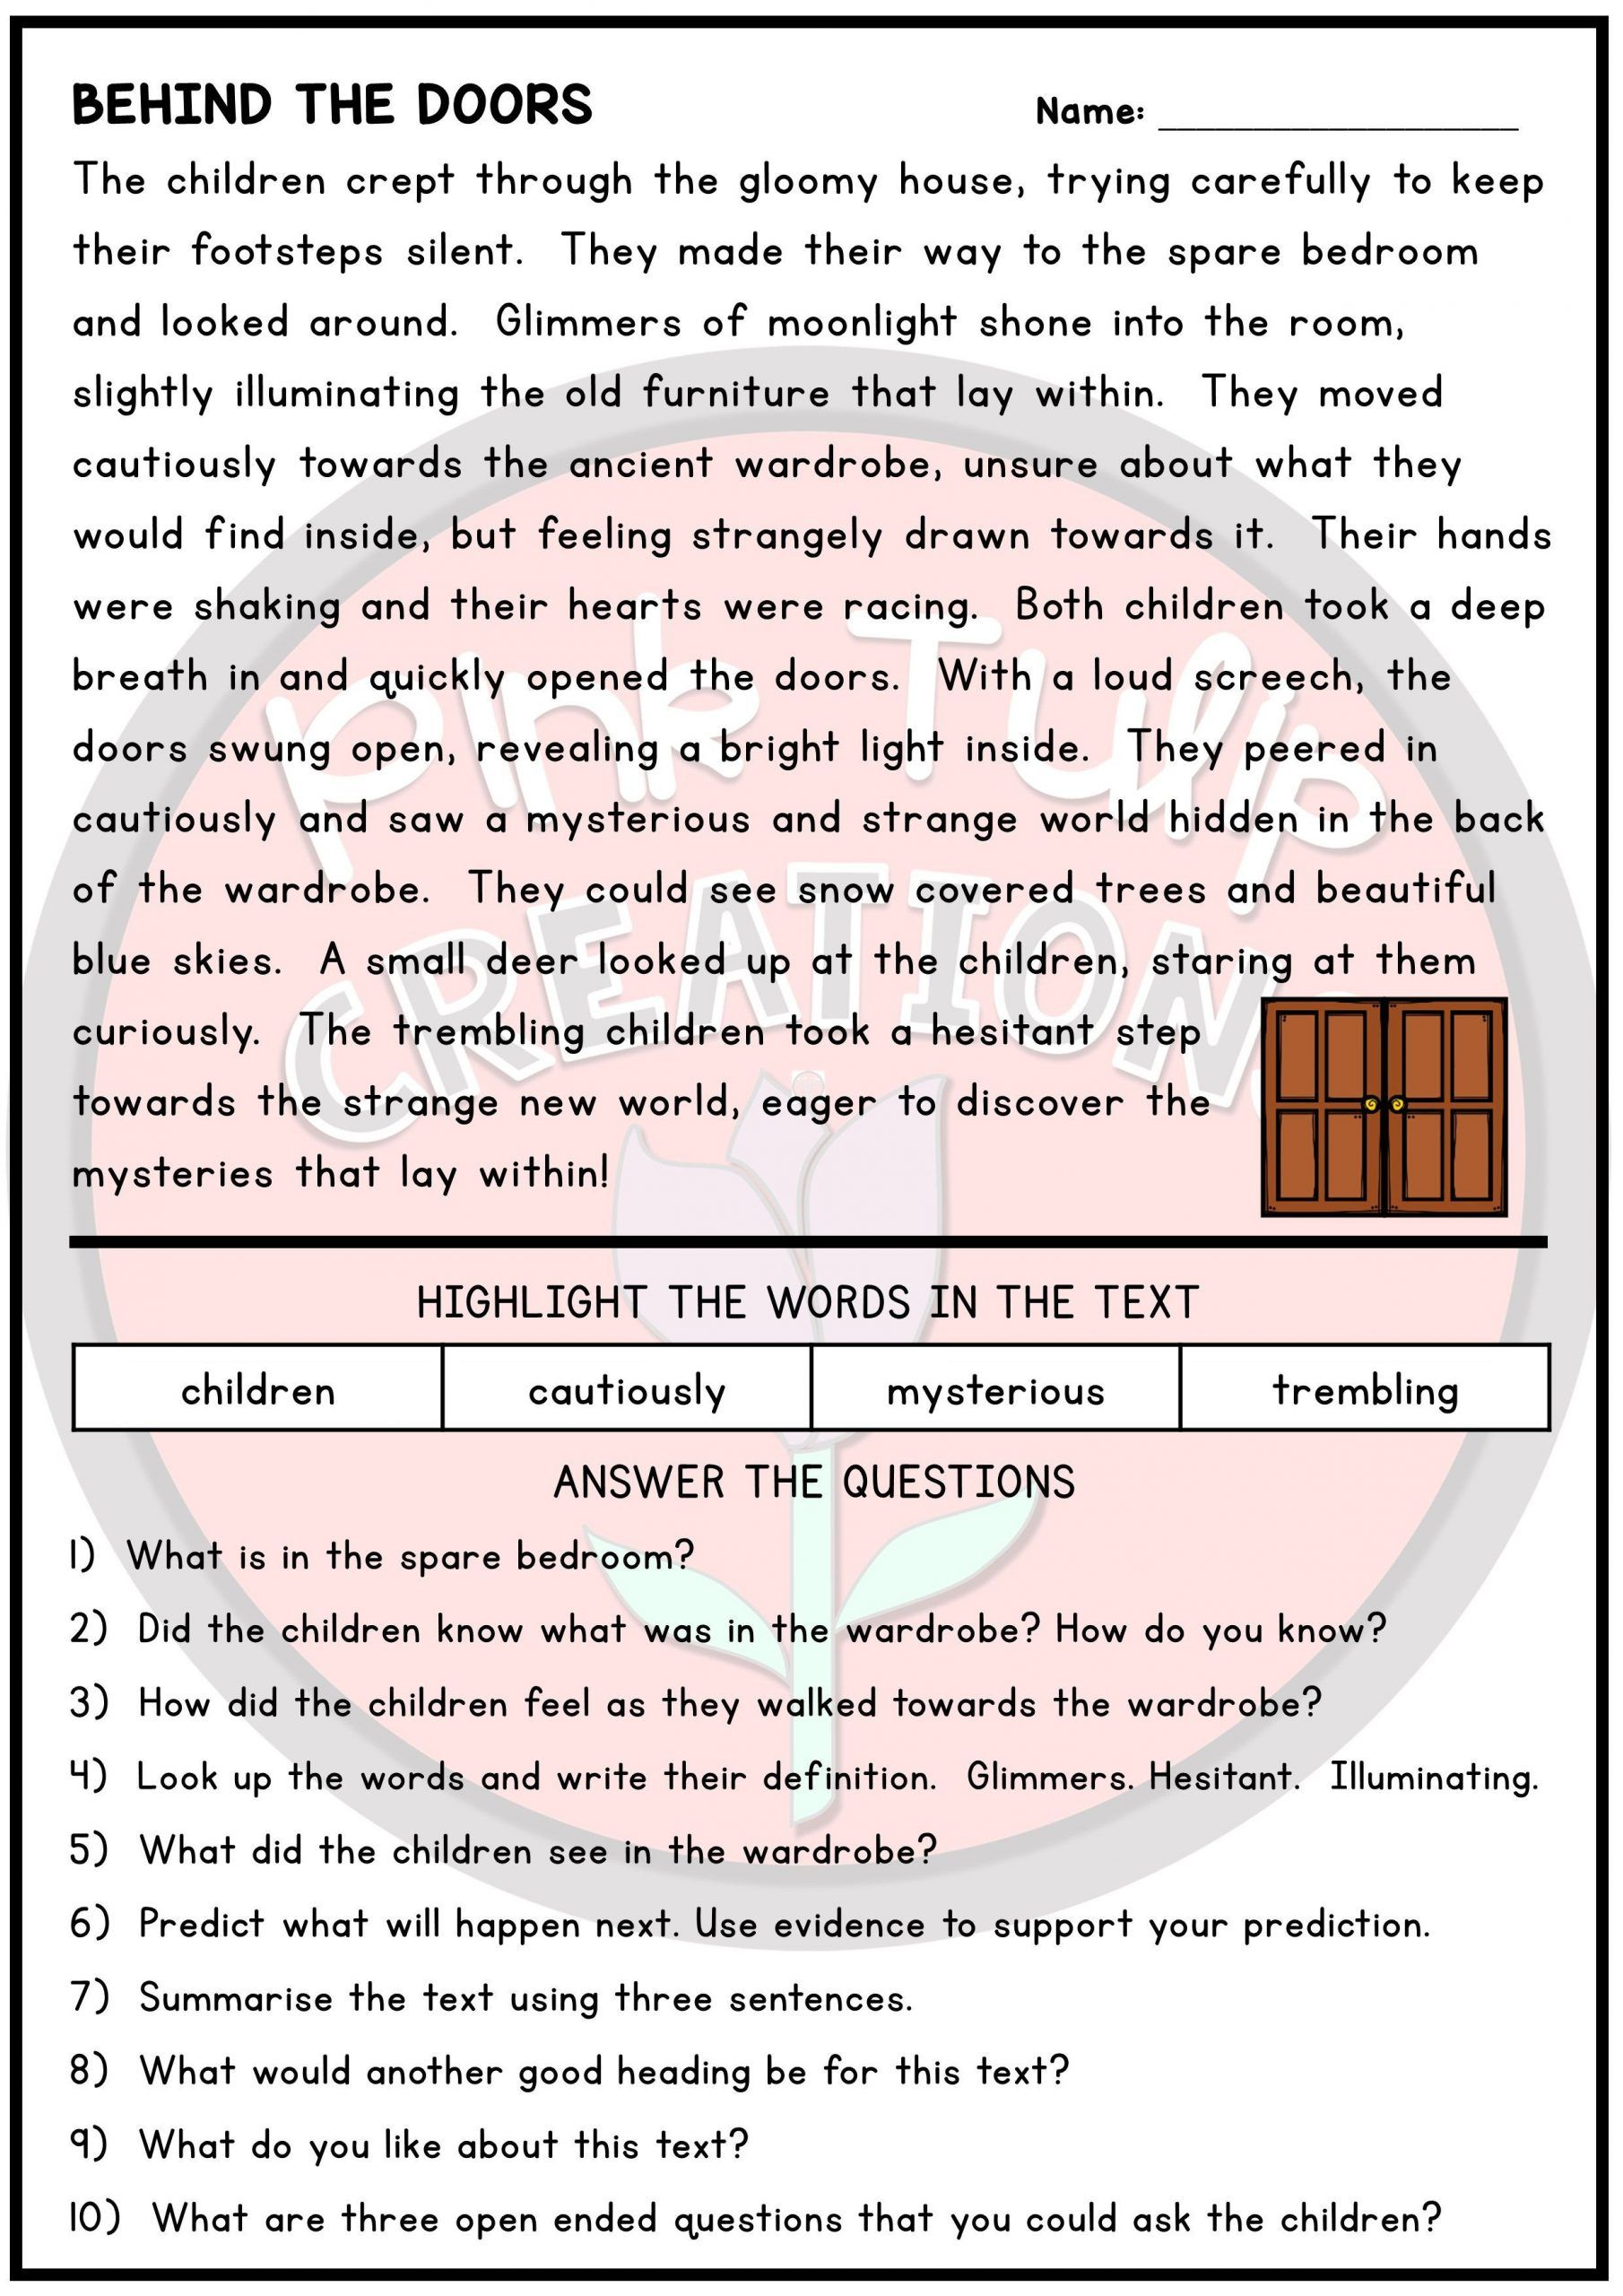 Draw Conclusions Worksheet 4th Grade In